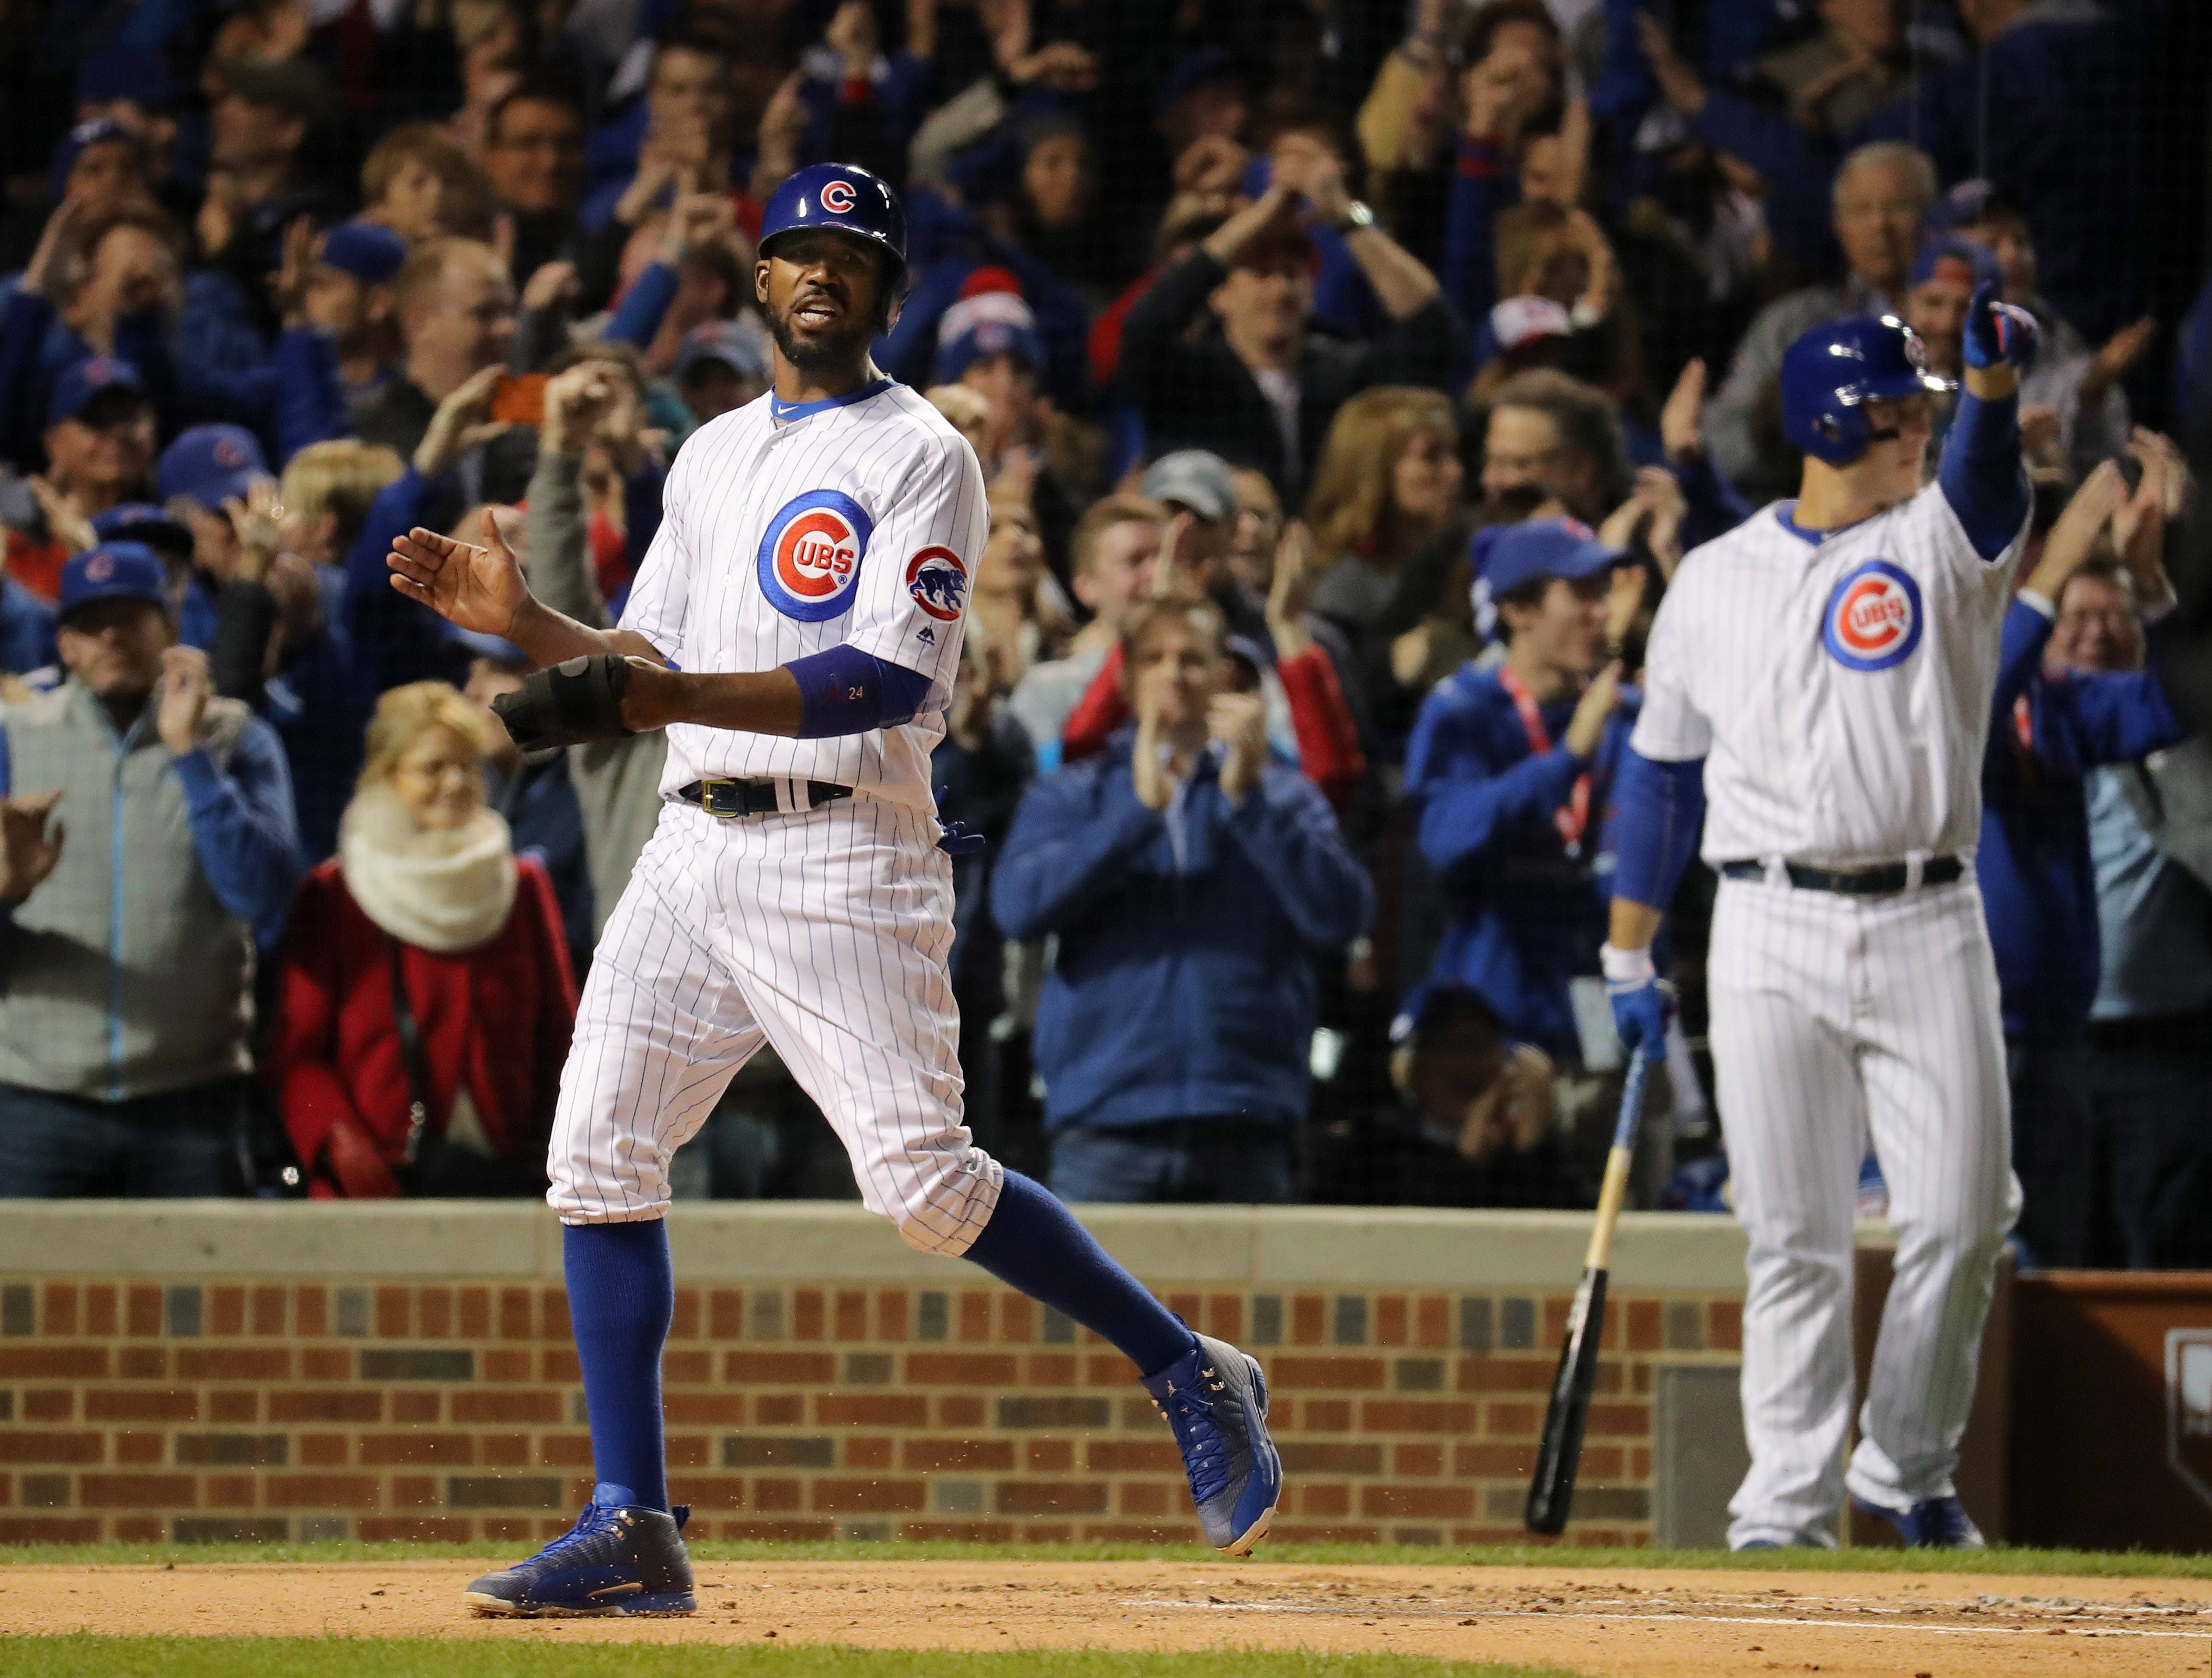 Chicago Cubs center fielder Dexter Fowler scores against the Los Angeles Dodgers in Game 6 of the National League championship series at Wrigley Field in Chicago.